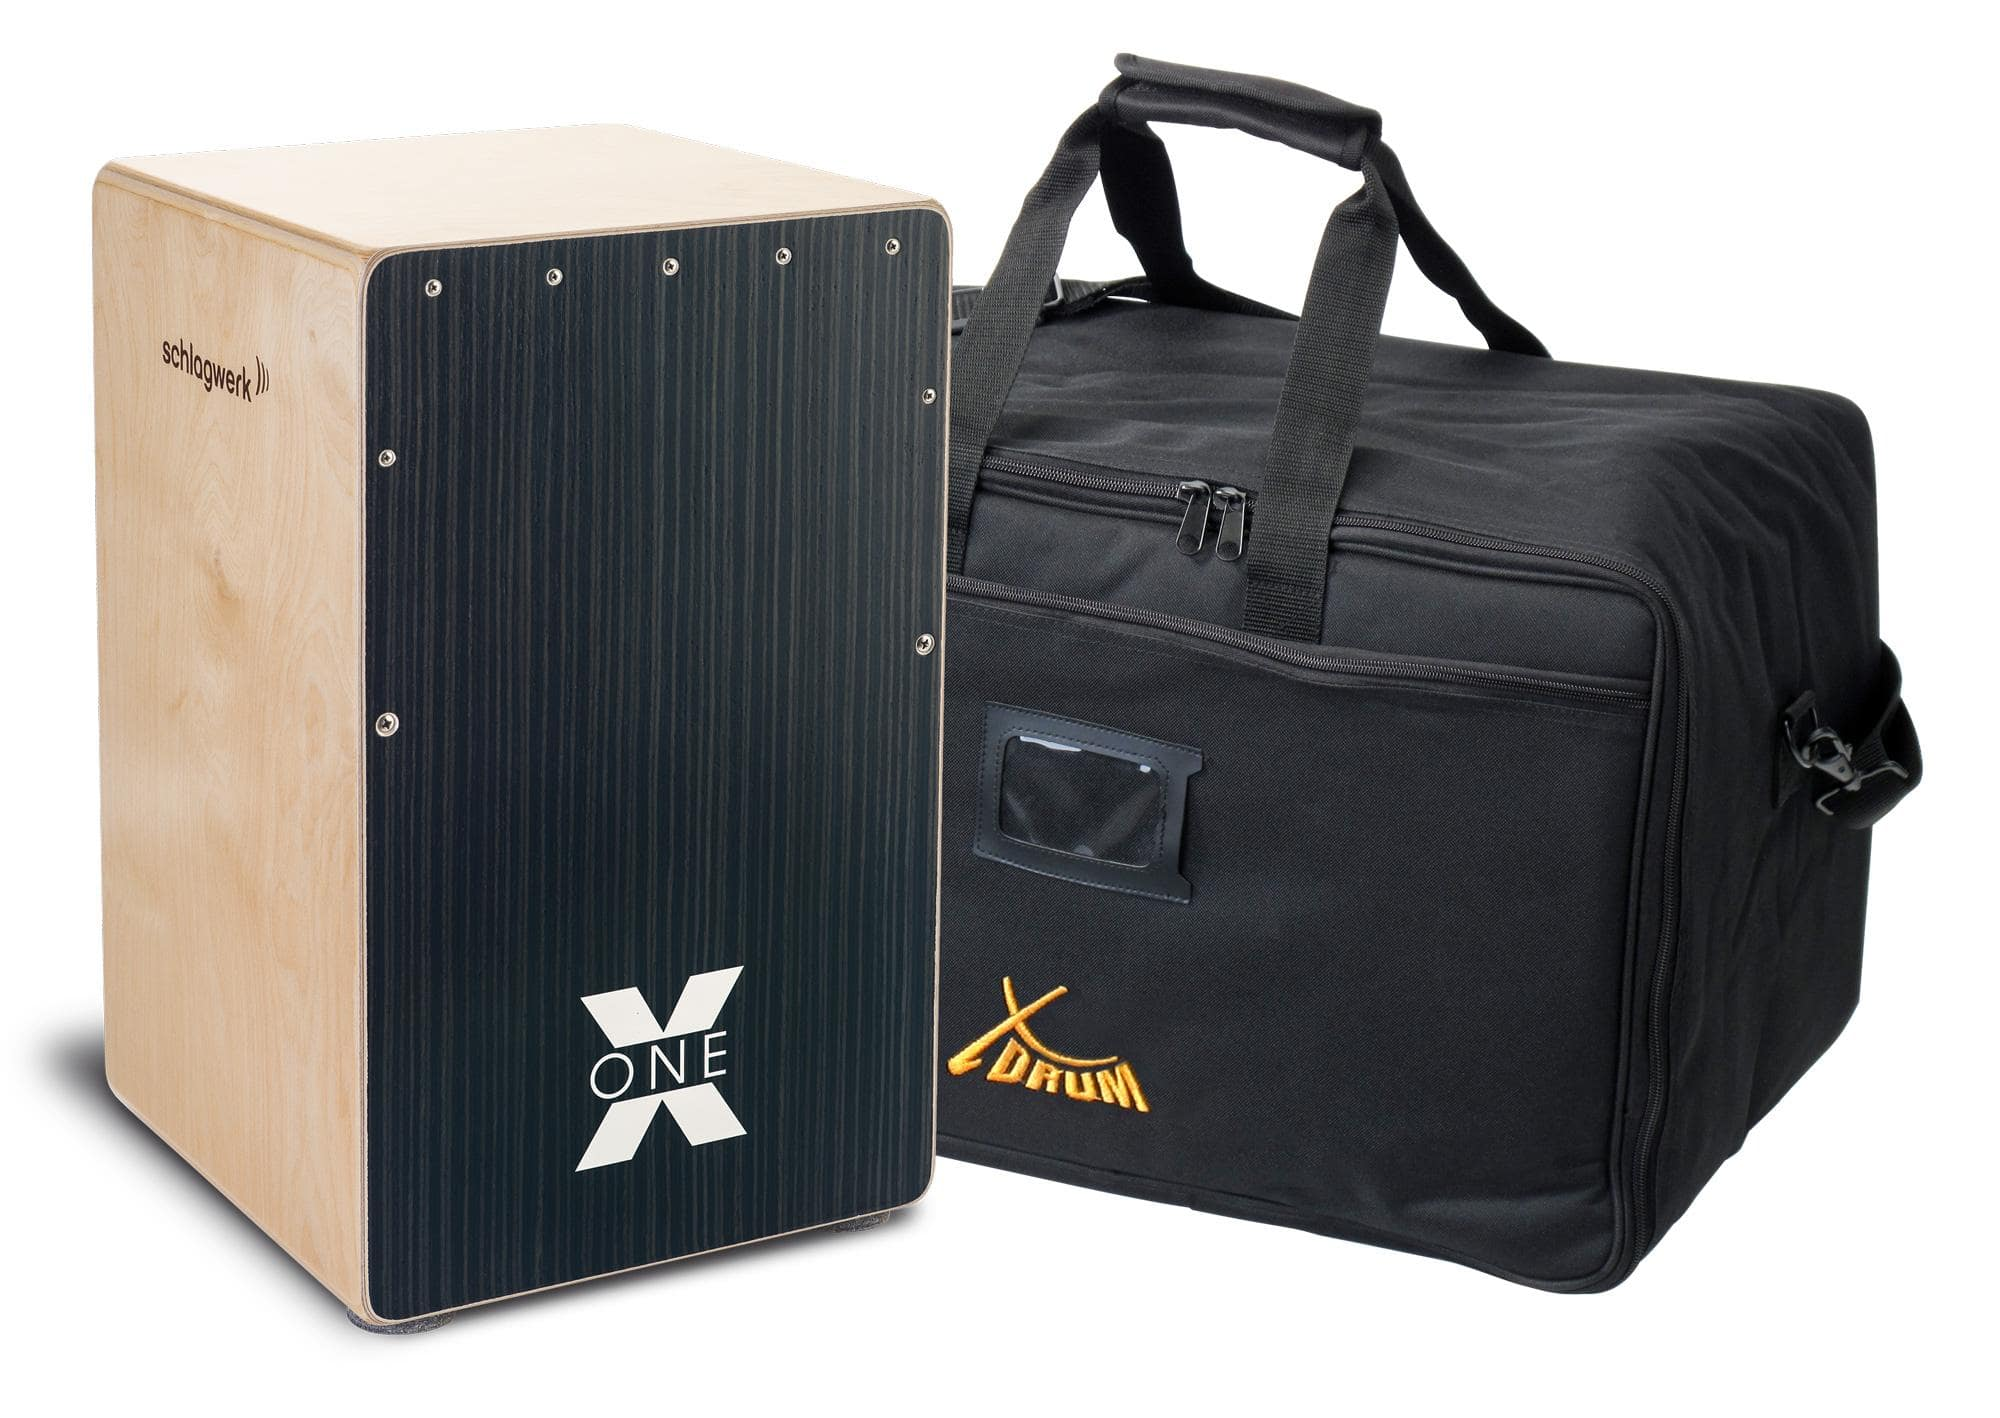 Schlagwerk CP160 Cajon X One Hard Coal Stripes Set inkl. Tasche